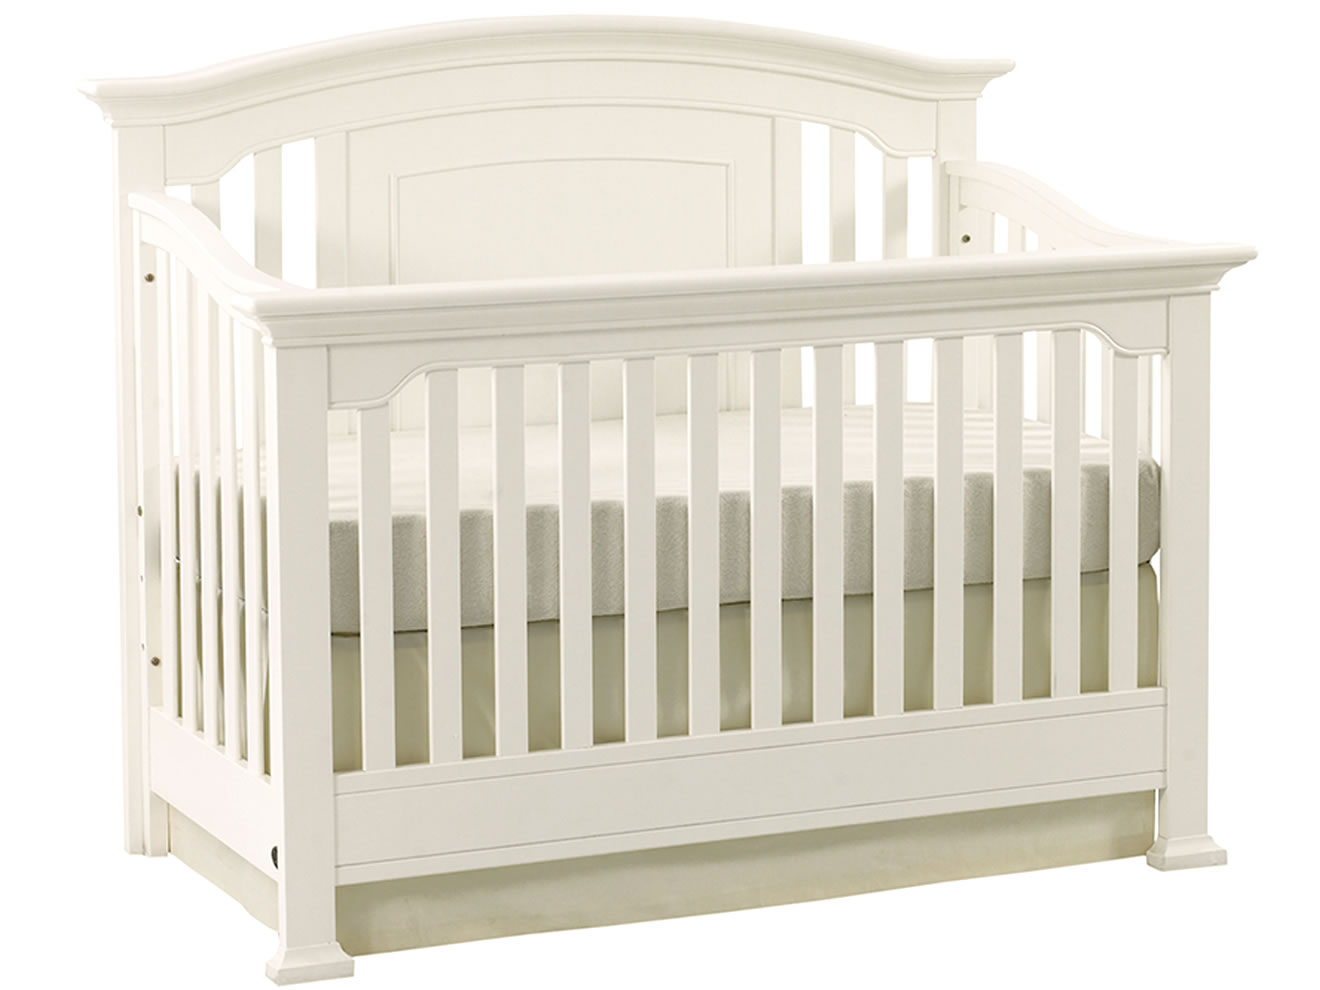 Lovely Wooden Crib In White Theme By Munire Crib For Nursery Furniture Ideas